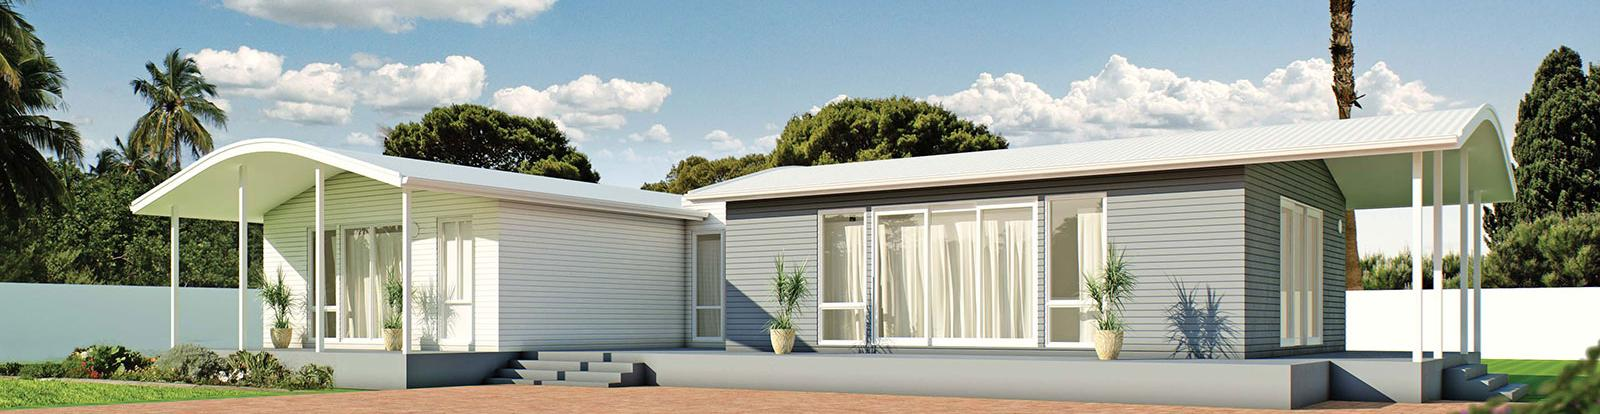 Beautiful home designs south australia photos amazing for Home designs south australia